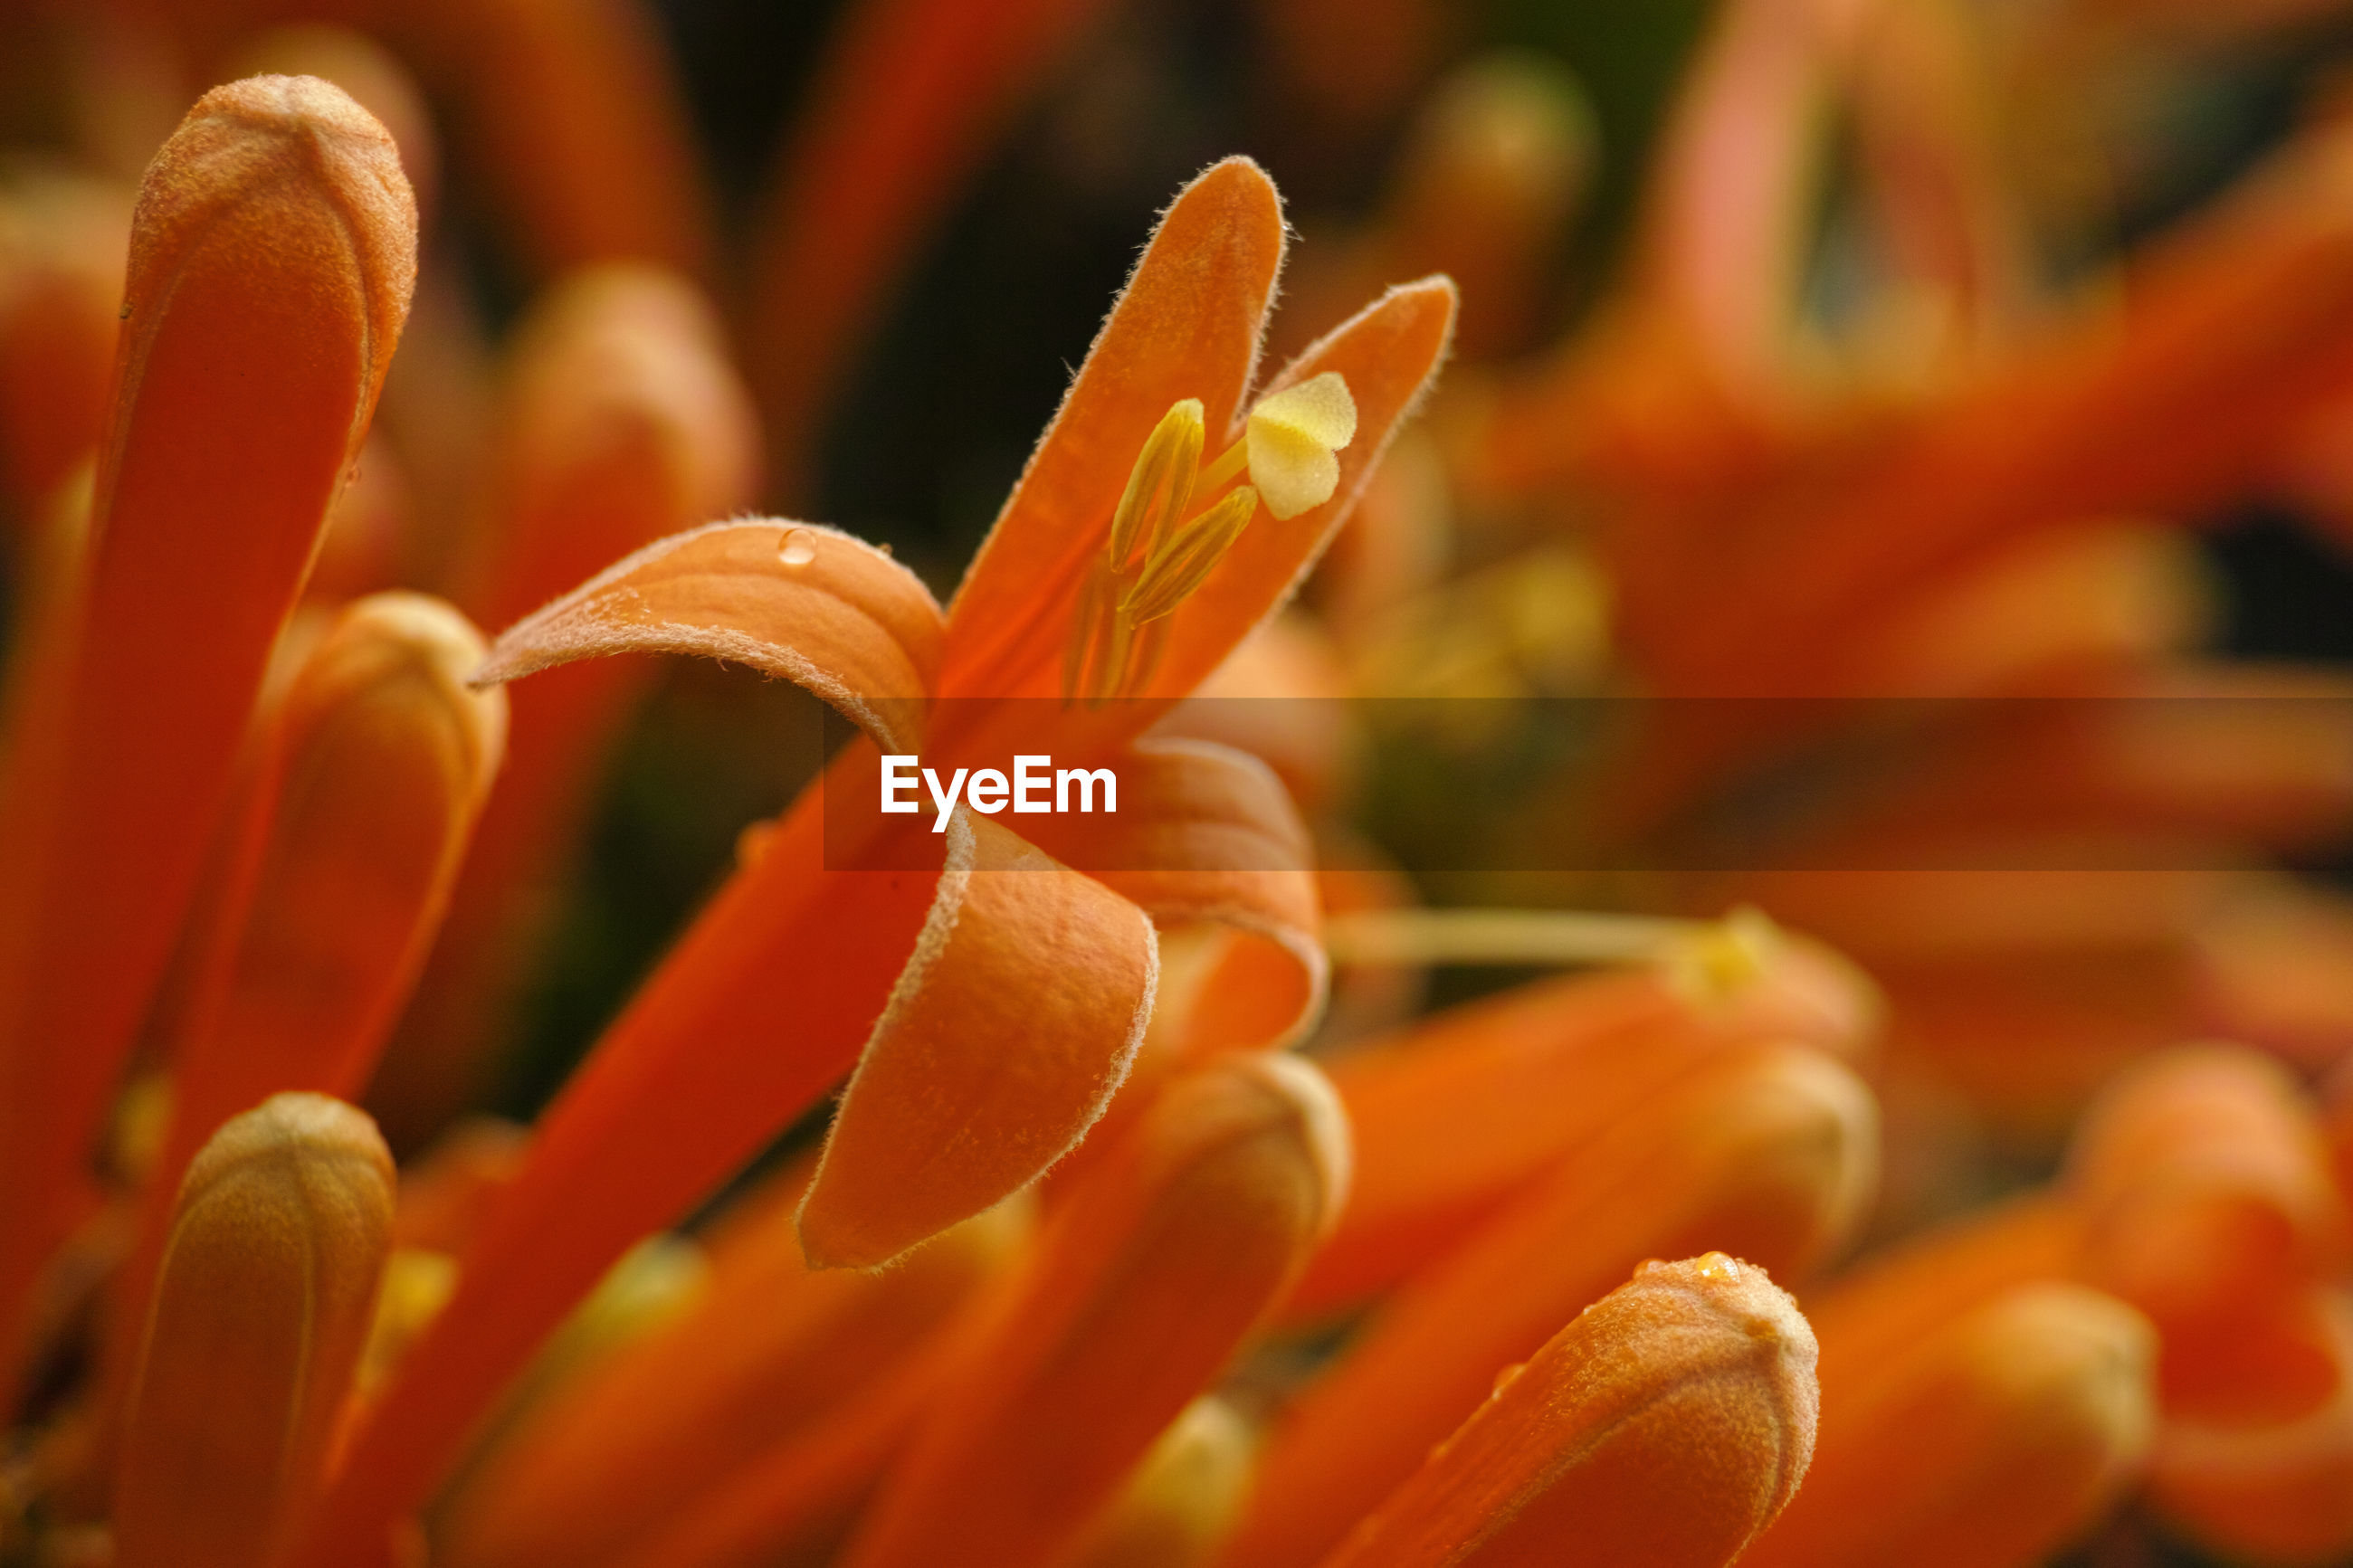 CLOSE-UP OF ORANGE DAY LILY